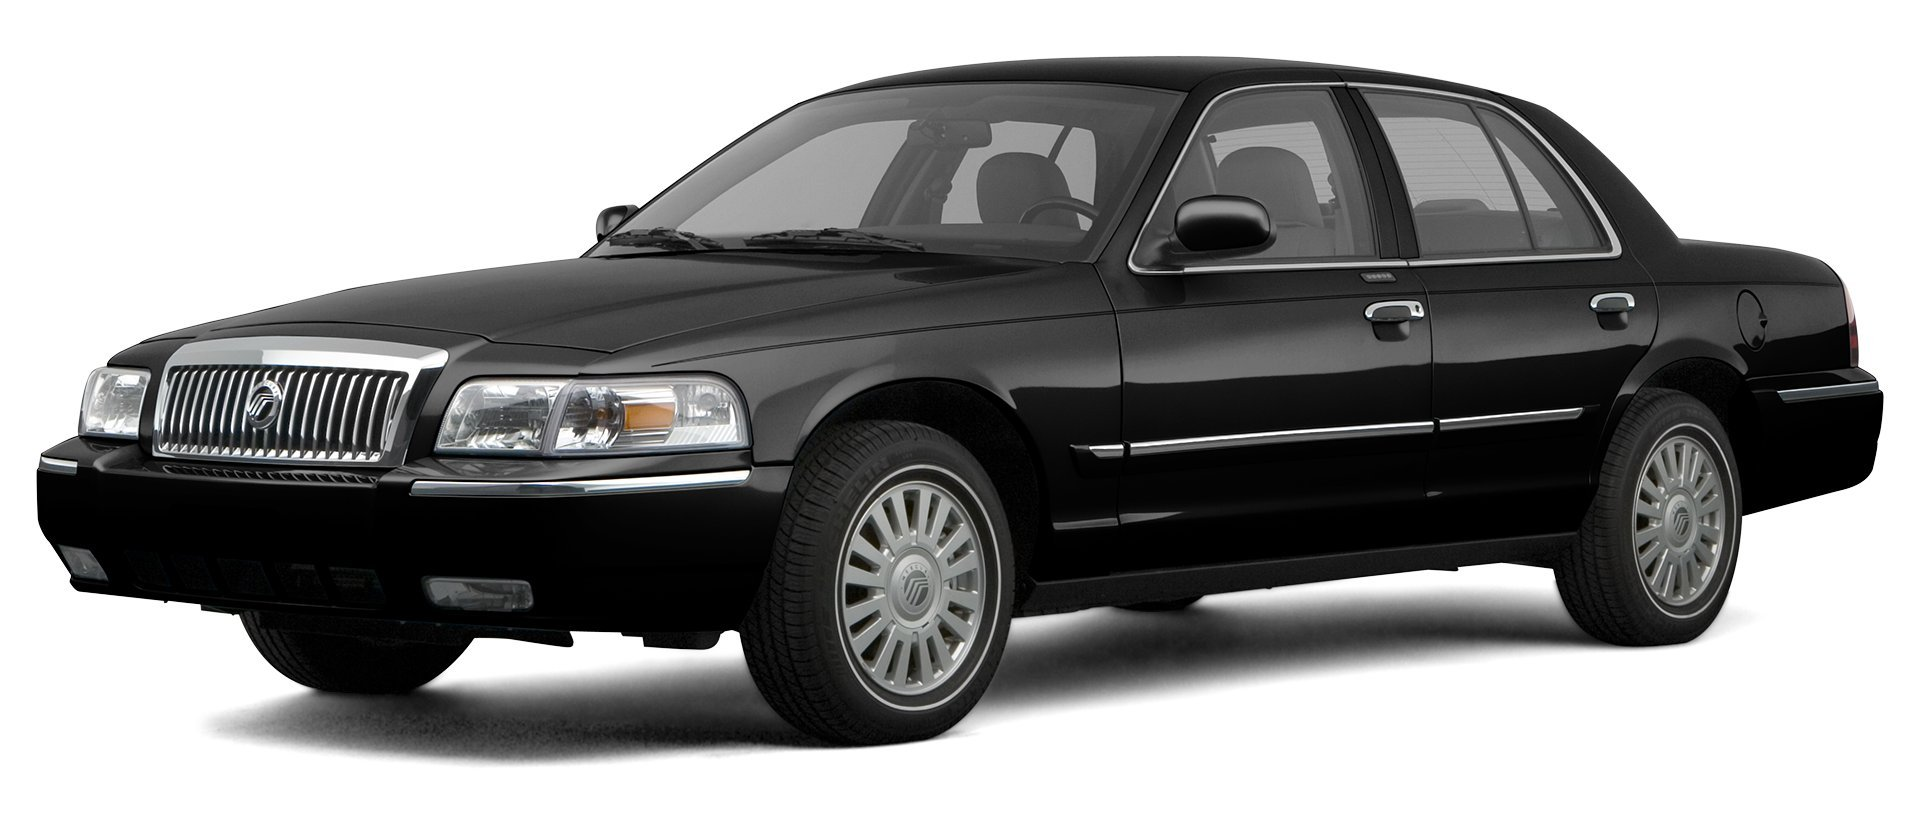 2007 Ford Crown Victoria Reviews Images And Specs 1980 Coupe Mercury Grand Marquis Ls 4 Door Sedan Lx